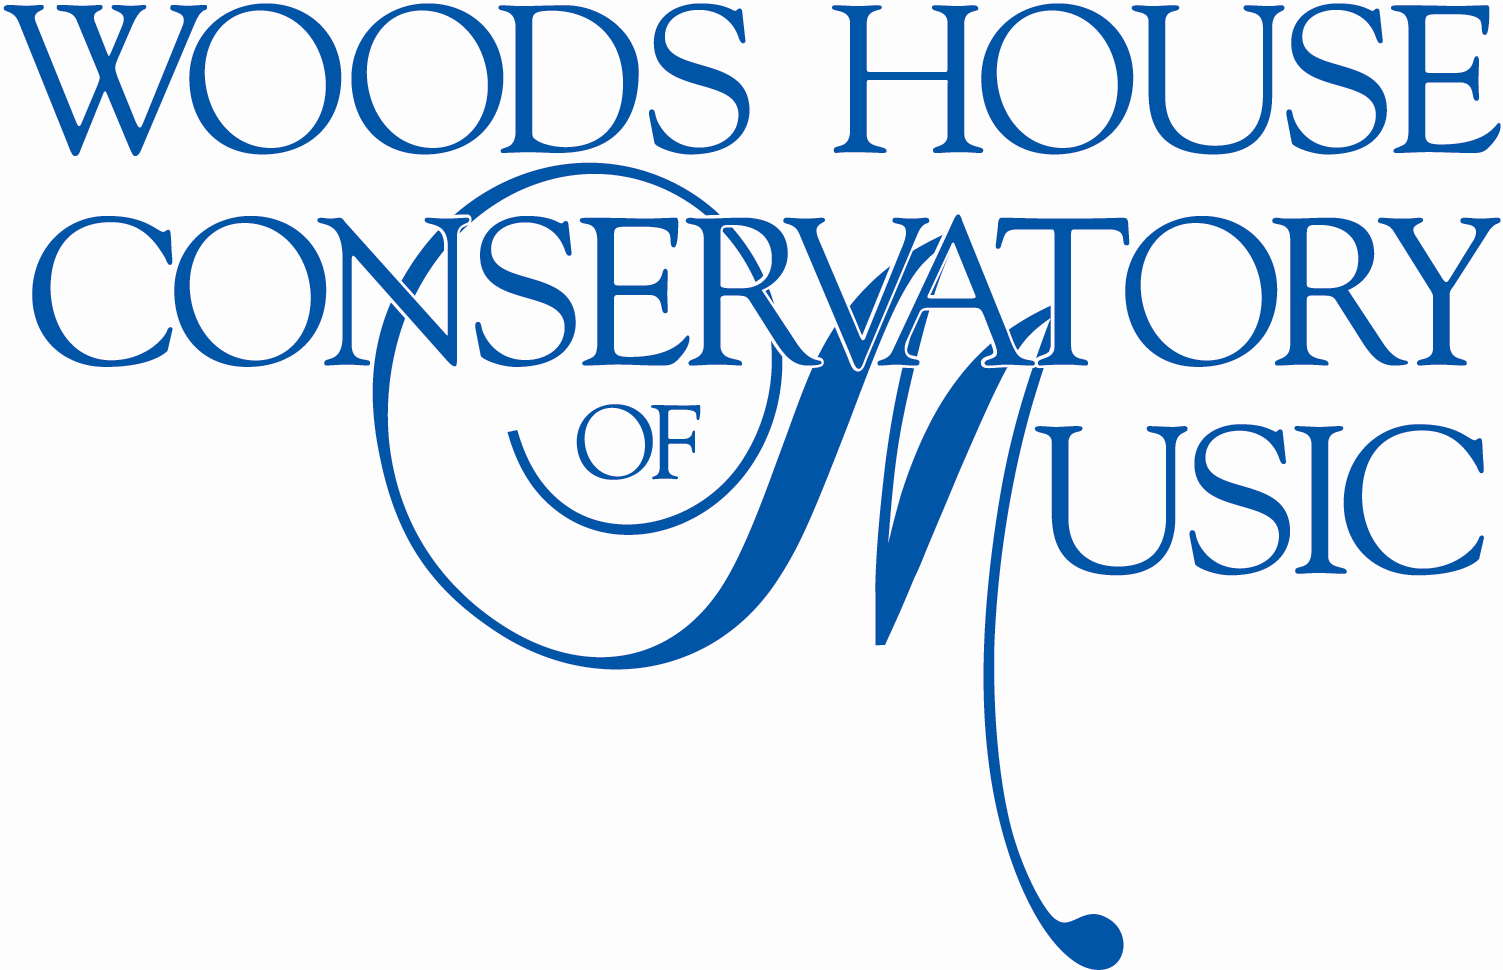 Woods House Conservatory of music.png